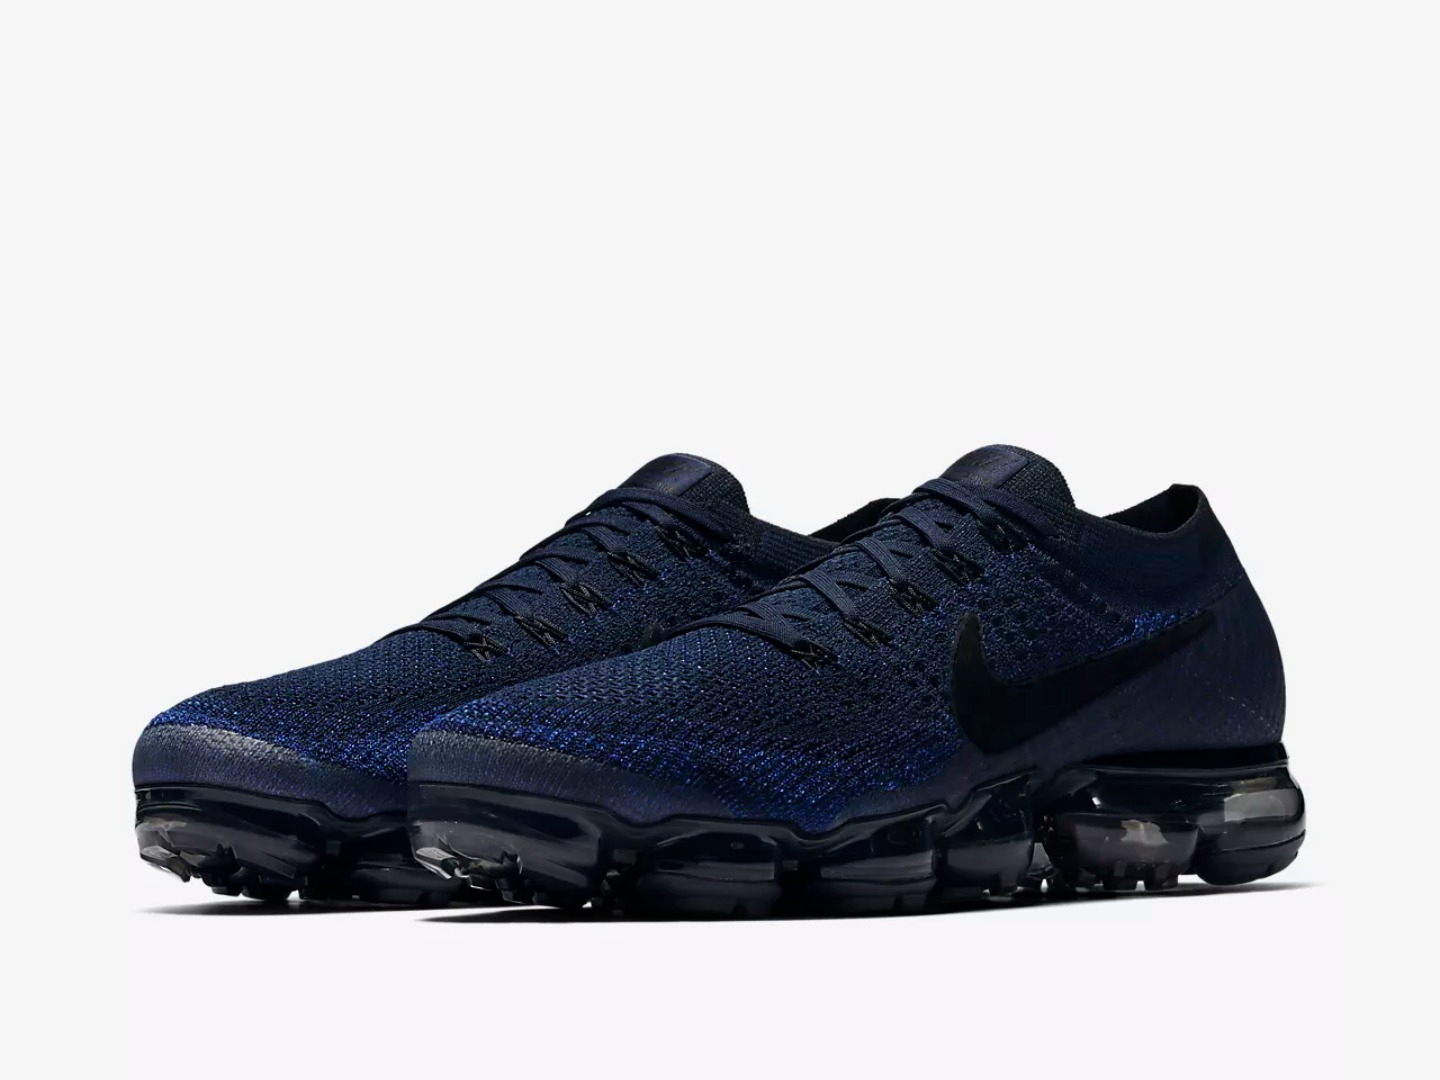 NIKE AIR VAPORMAX FLYKNIT Men's Running Shoe ナイキ